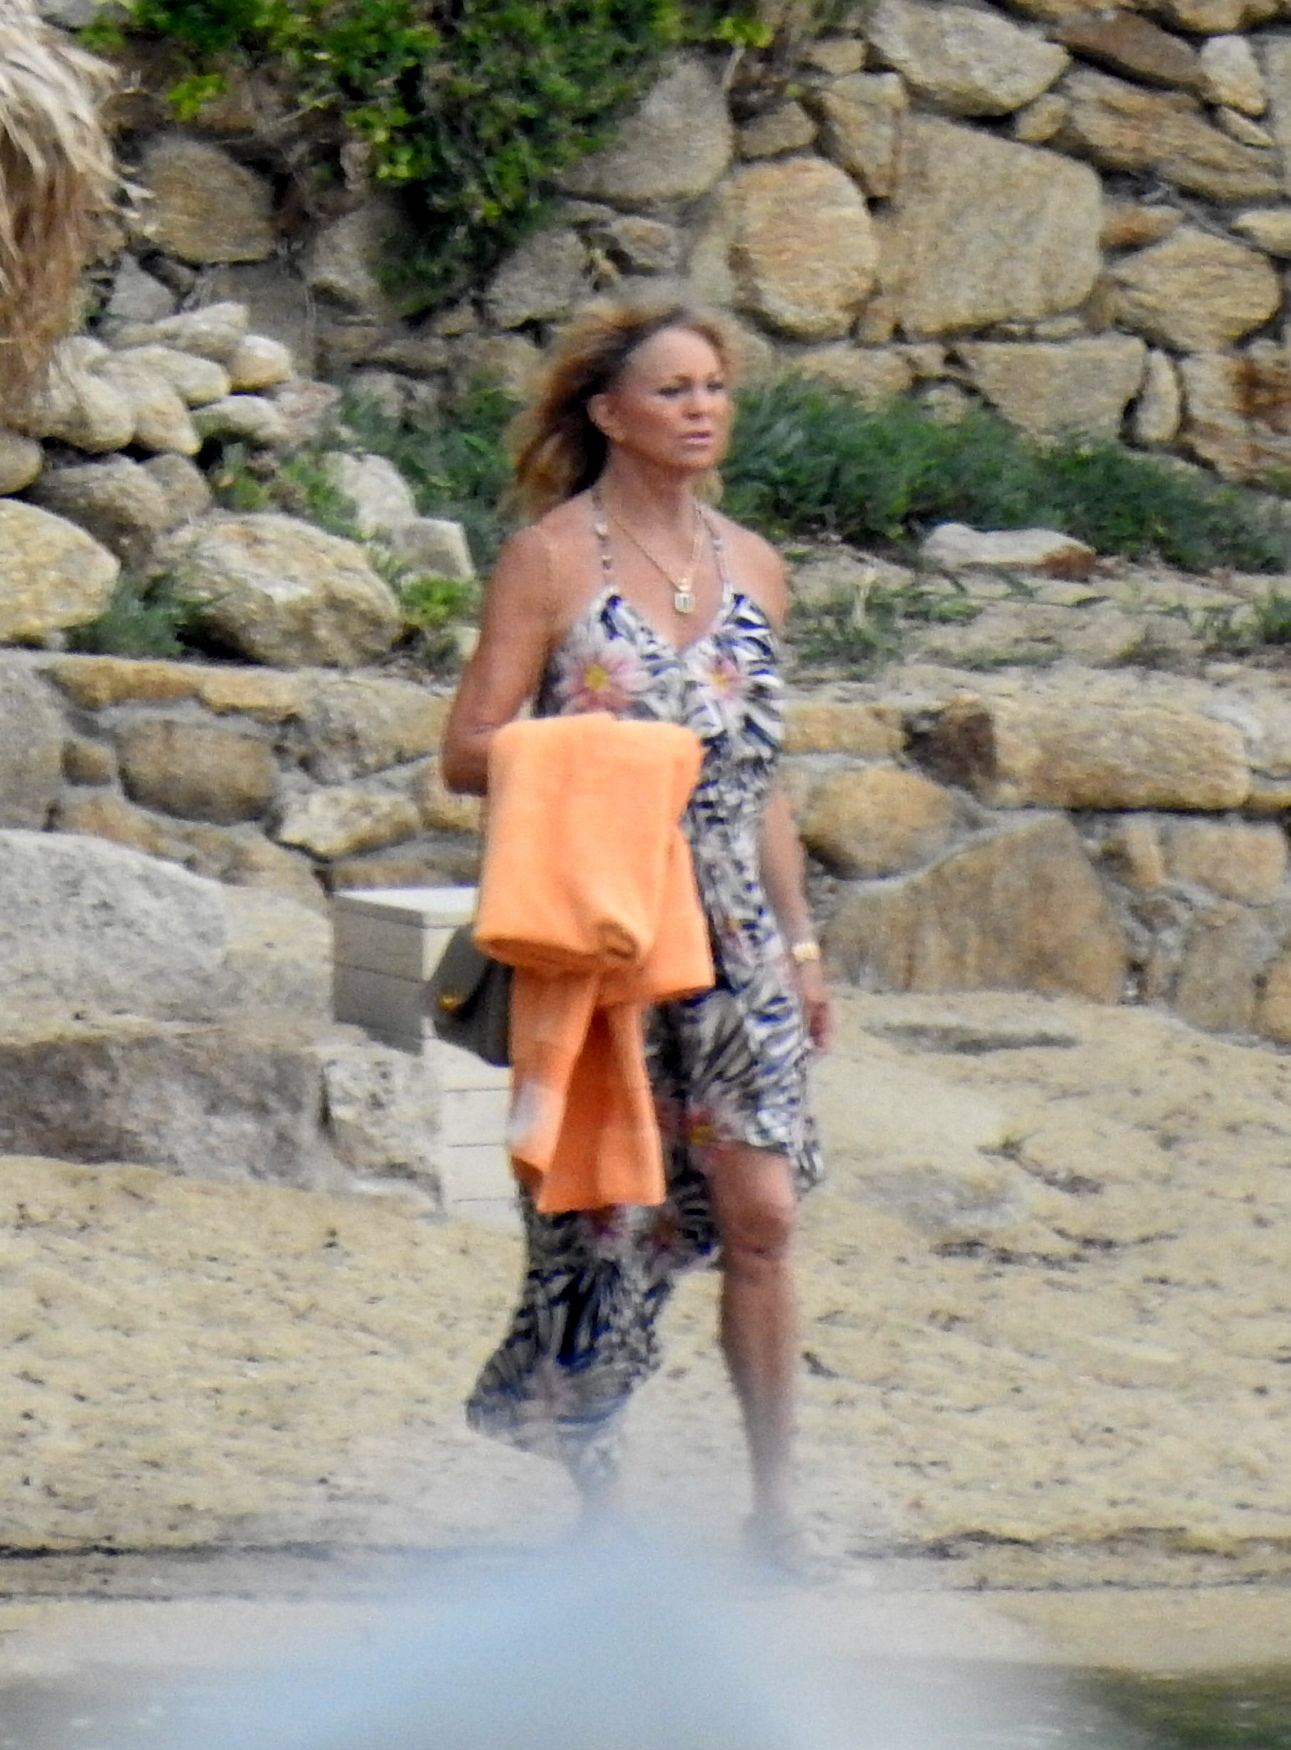 EXCLUSIVE: **USE CHILD PIXELATED IMAGES IF YOUR TERRITORY REQUIRES IT**  American actress, Kate Hudson shows off her growing baby bump while on holiday in Mykonos, Greece.   The actress, 39, is expecting a baby girl with boyfriend, Danny Fujikawa. It will be her third child.   Kate looked radiant in a bikini as she strolled on a beach with mother Goldie and family, including Danny.  Pictured: Kate Hudson,Goldie Hawn,Danny Fujikawa Ref: SPL5003967 150618 EXCLUSIVE Picture by: SplashNews.com  Splash News and Pictures Los Angeles: 310-821-2666 New York: 212-619-2666 London: 0207 644 7656 Milan: +39 02 4399 8577 photodesk@splashnews.com  World Rights, No Greece Rights